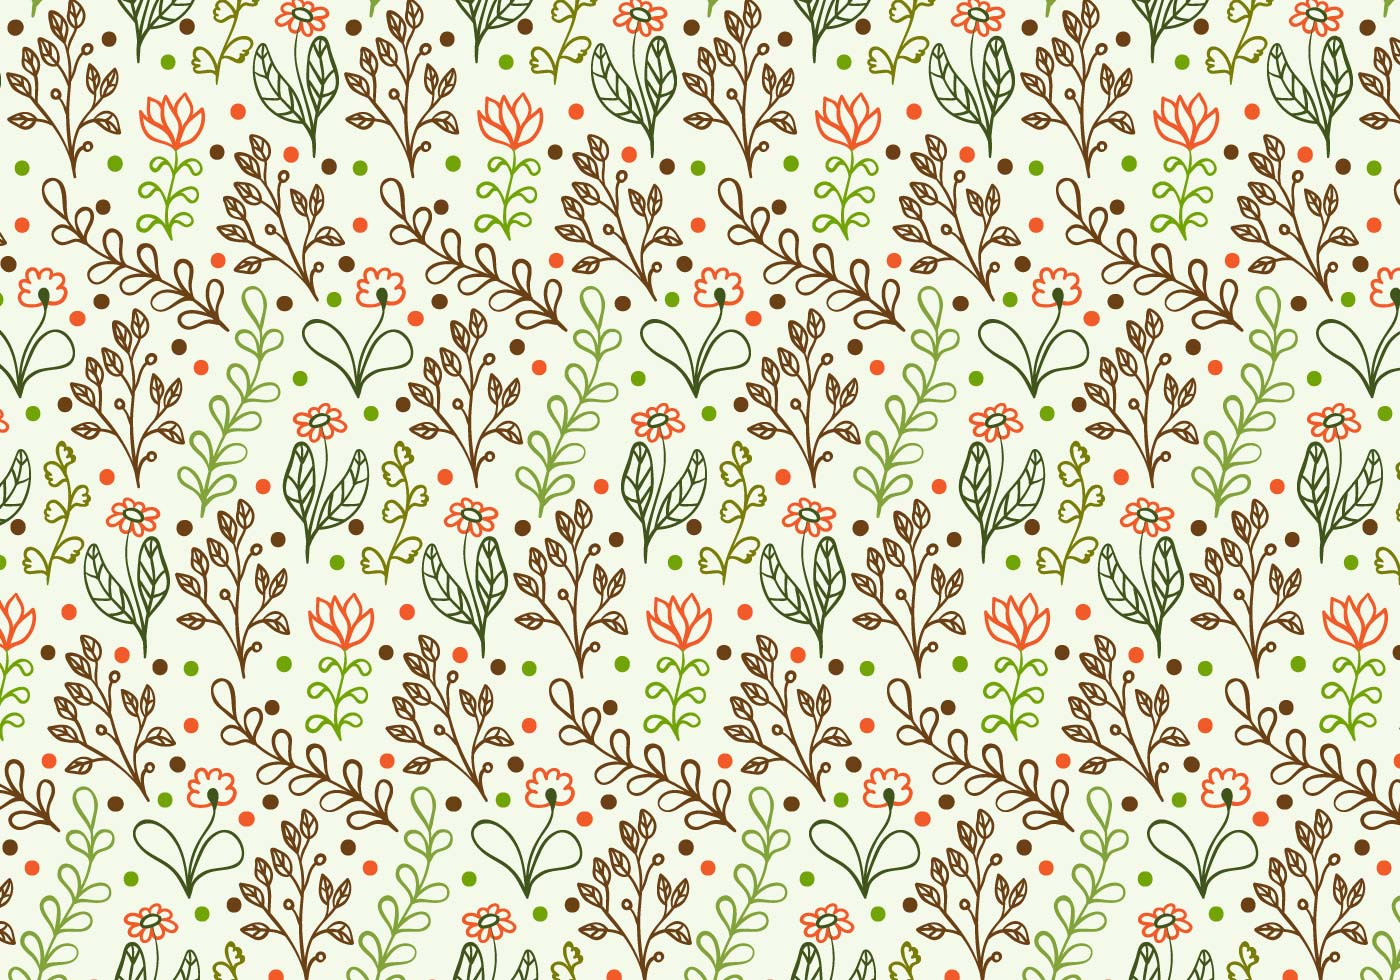 Cute Lace Wallpaper Free Vector Doodle Floral Background Download Free